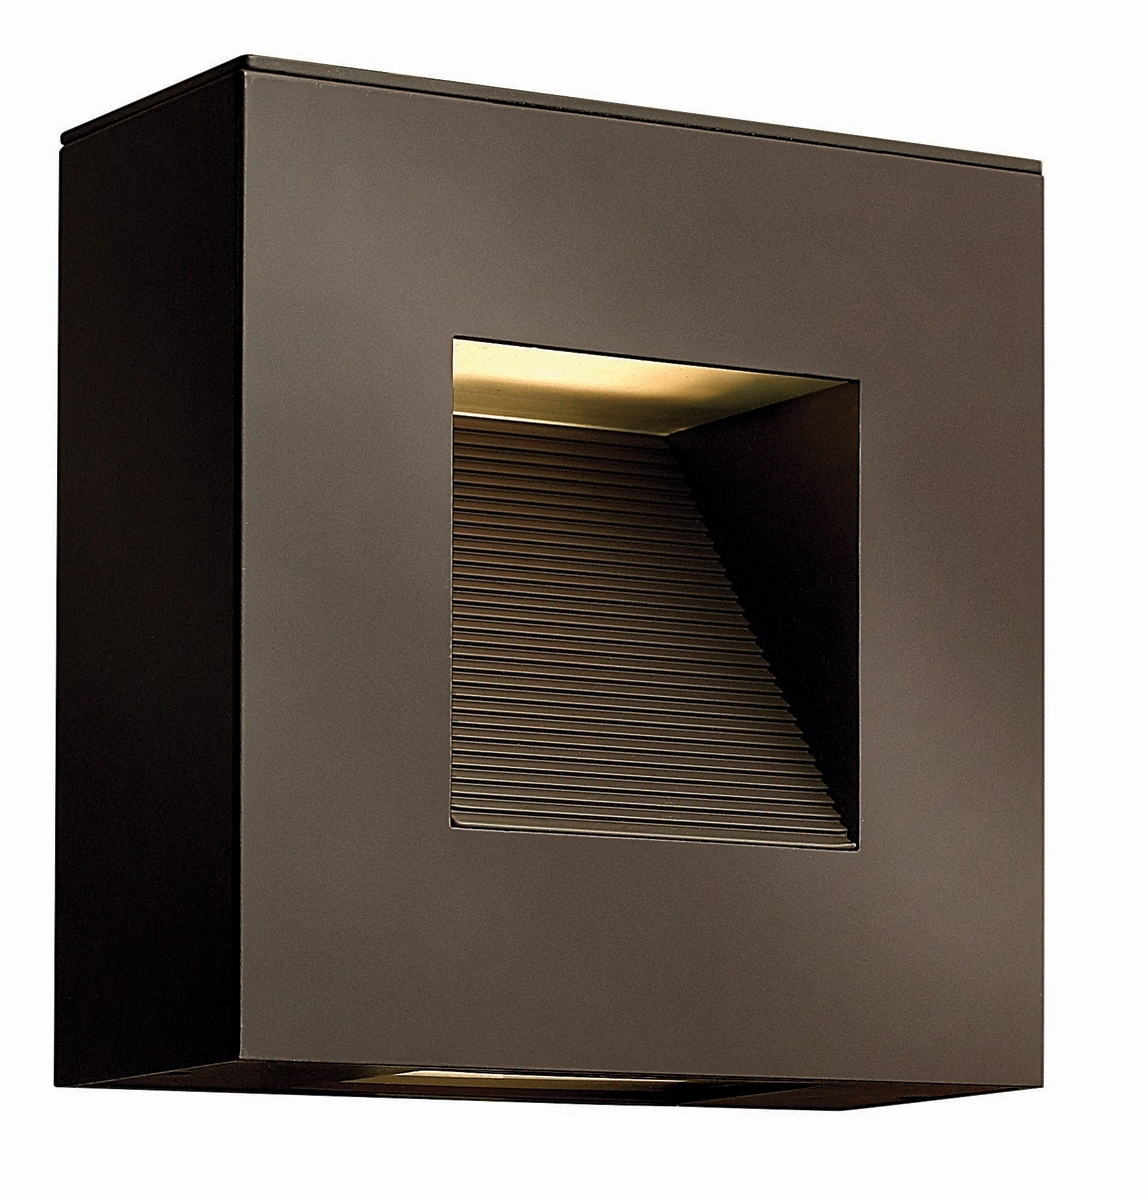 Trendy Light : Formidable Black Wall Mounted Exterior Lights White Simple With Outdoor Wall Post Lights (View 20 of 20)